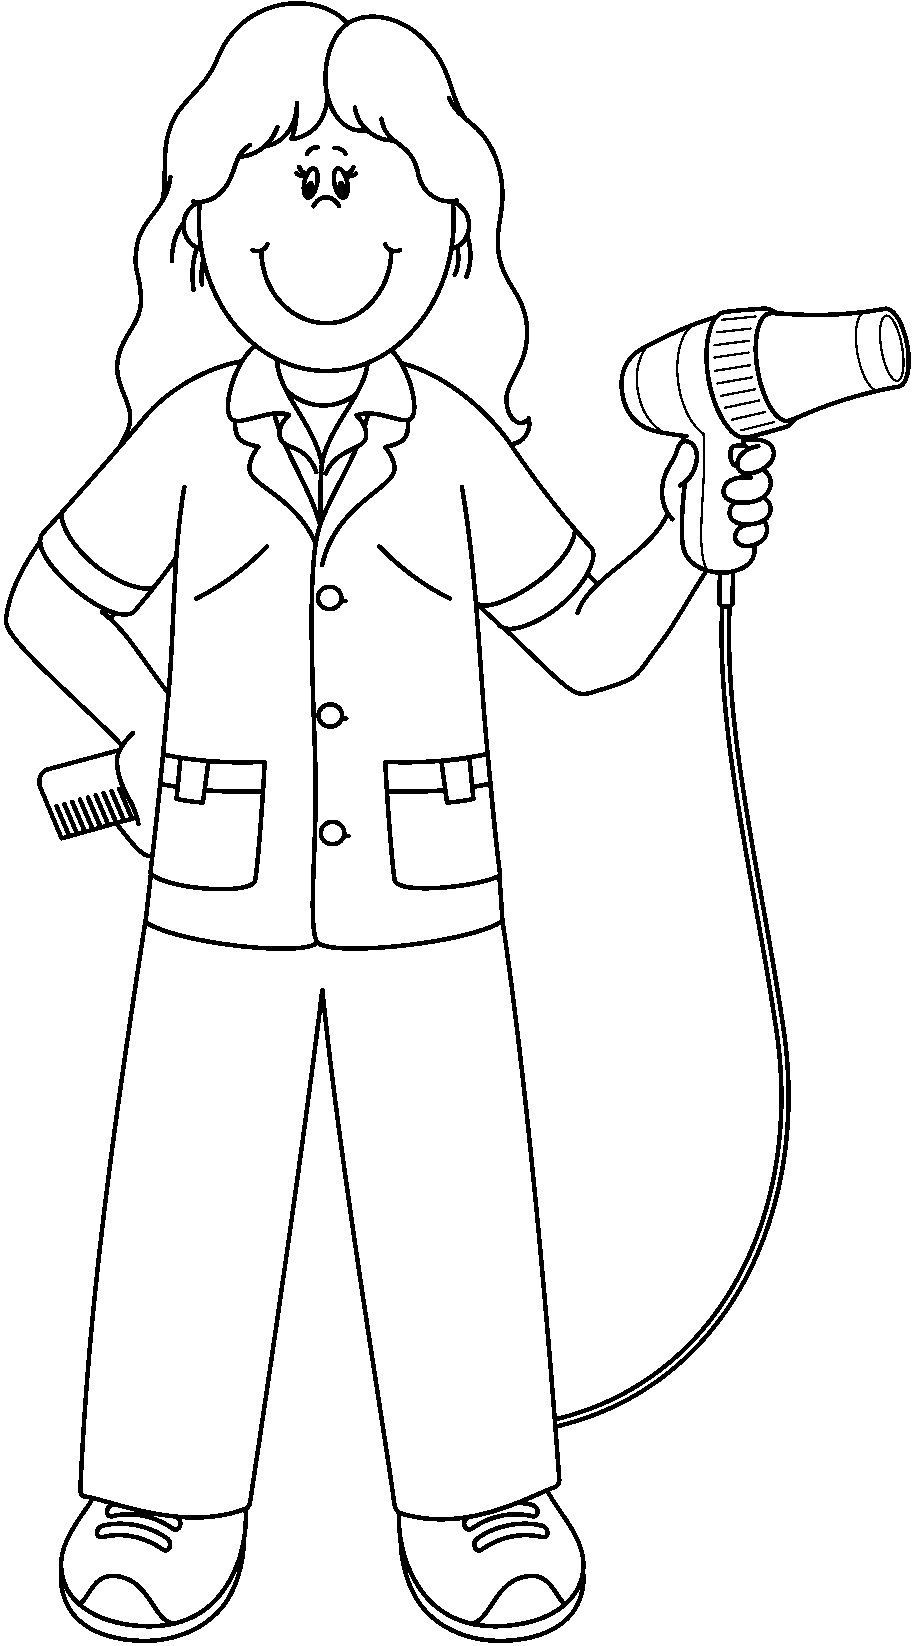 coloring community helpers images community helper coloring pages coloring pages for children coloring images helpers community